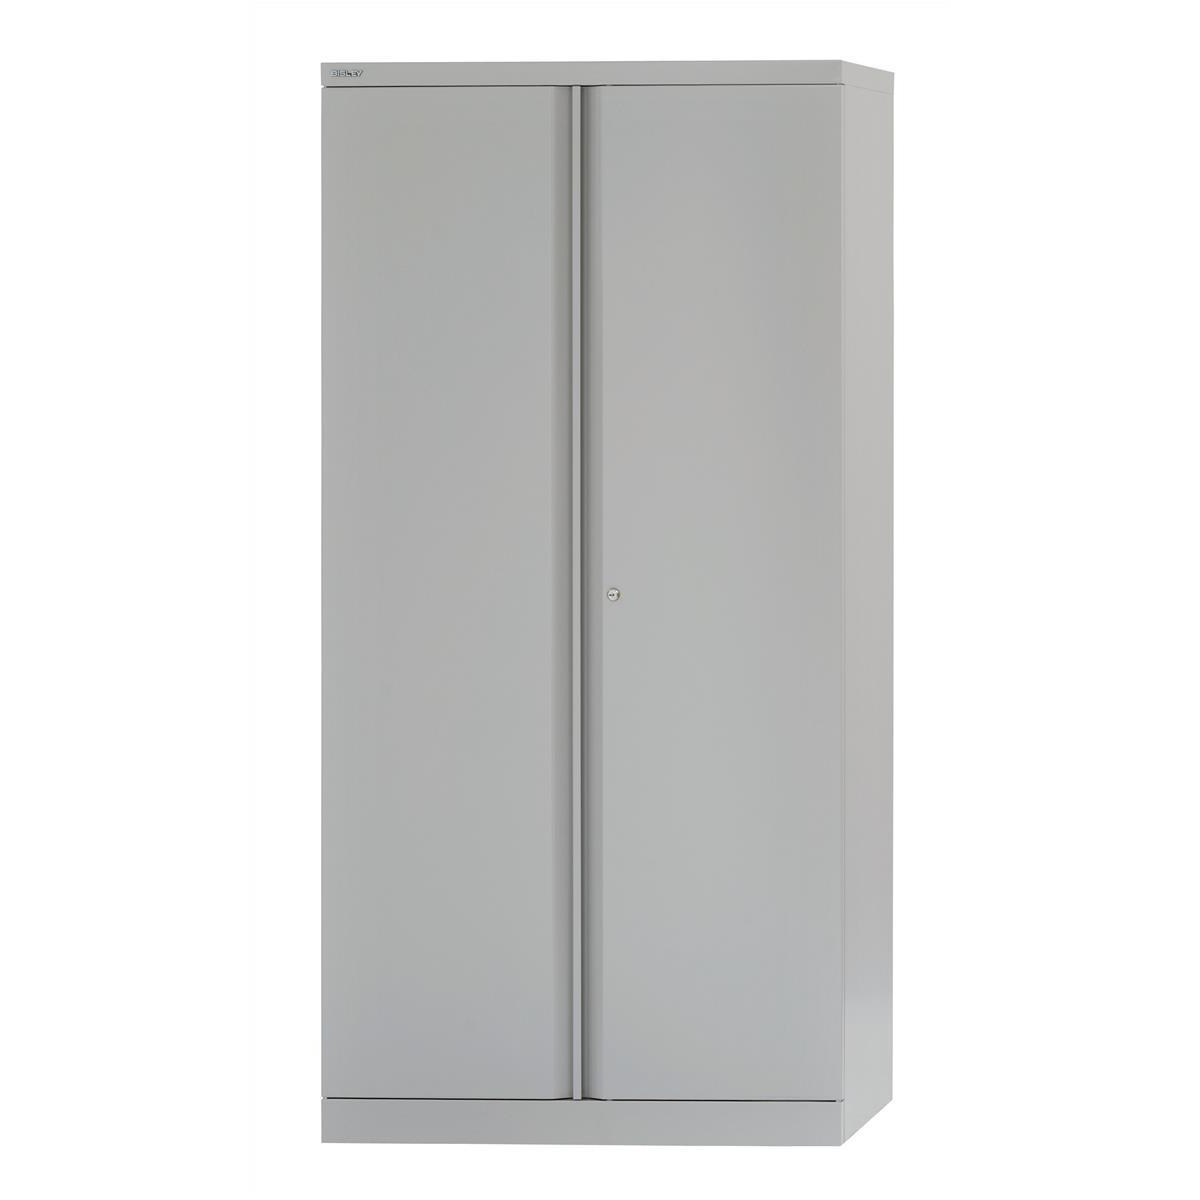 Bisley Cupboard Steel High 2-door 3-Shelf W914xD457xH1806mm Grey Ref 7236/2/S grey